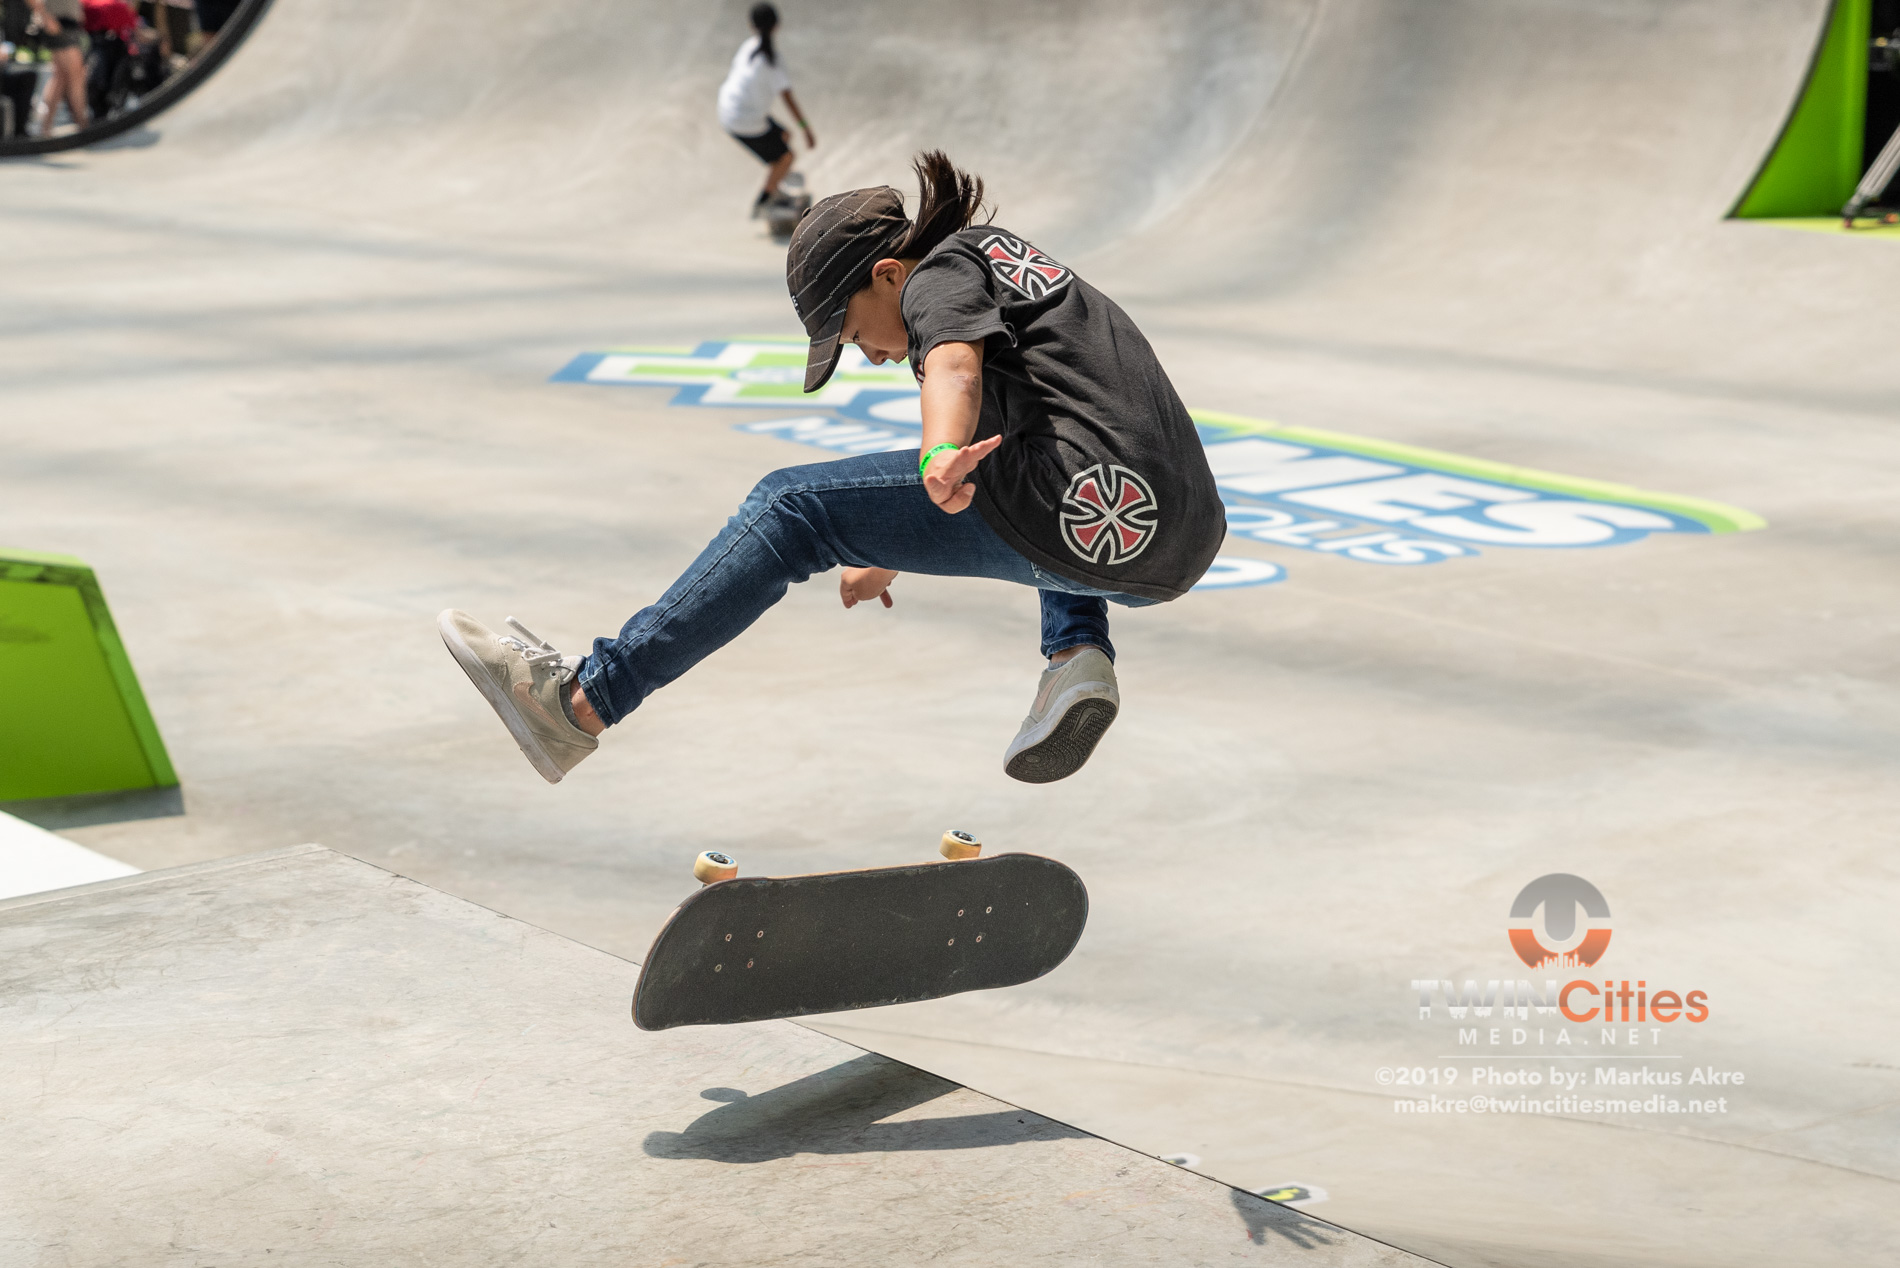 2019-X-Games-Day-4-Women-Skateboard-Street-8